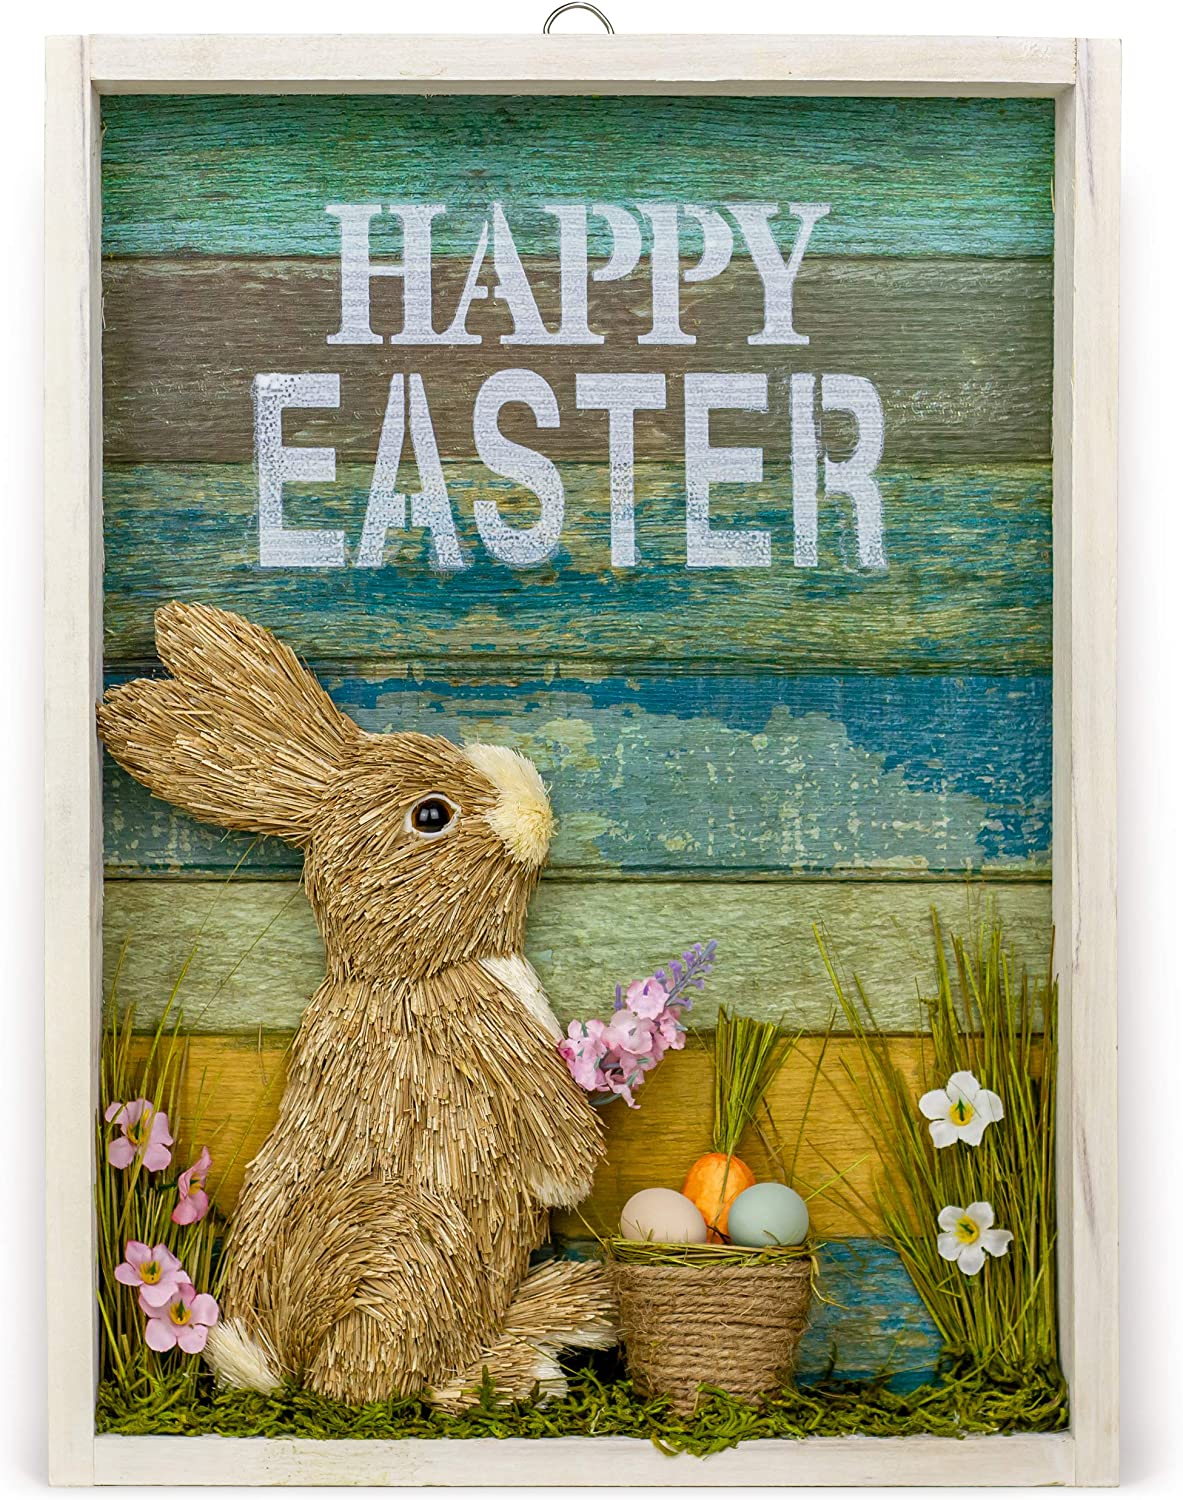 AXI Happy Easter Decor, Spring Decorations for Home. Usable As Standing or Hanging Easter Wall Decoration. 16x12 Unique Handmade Design with Bright Colours. Nice Easter Gift.